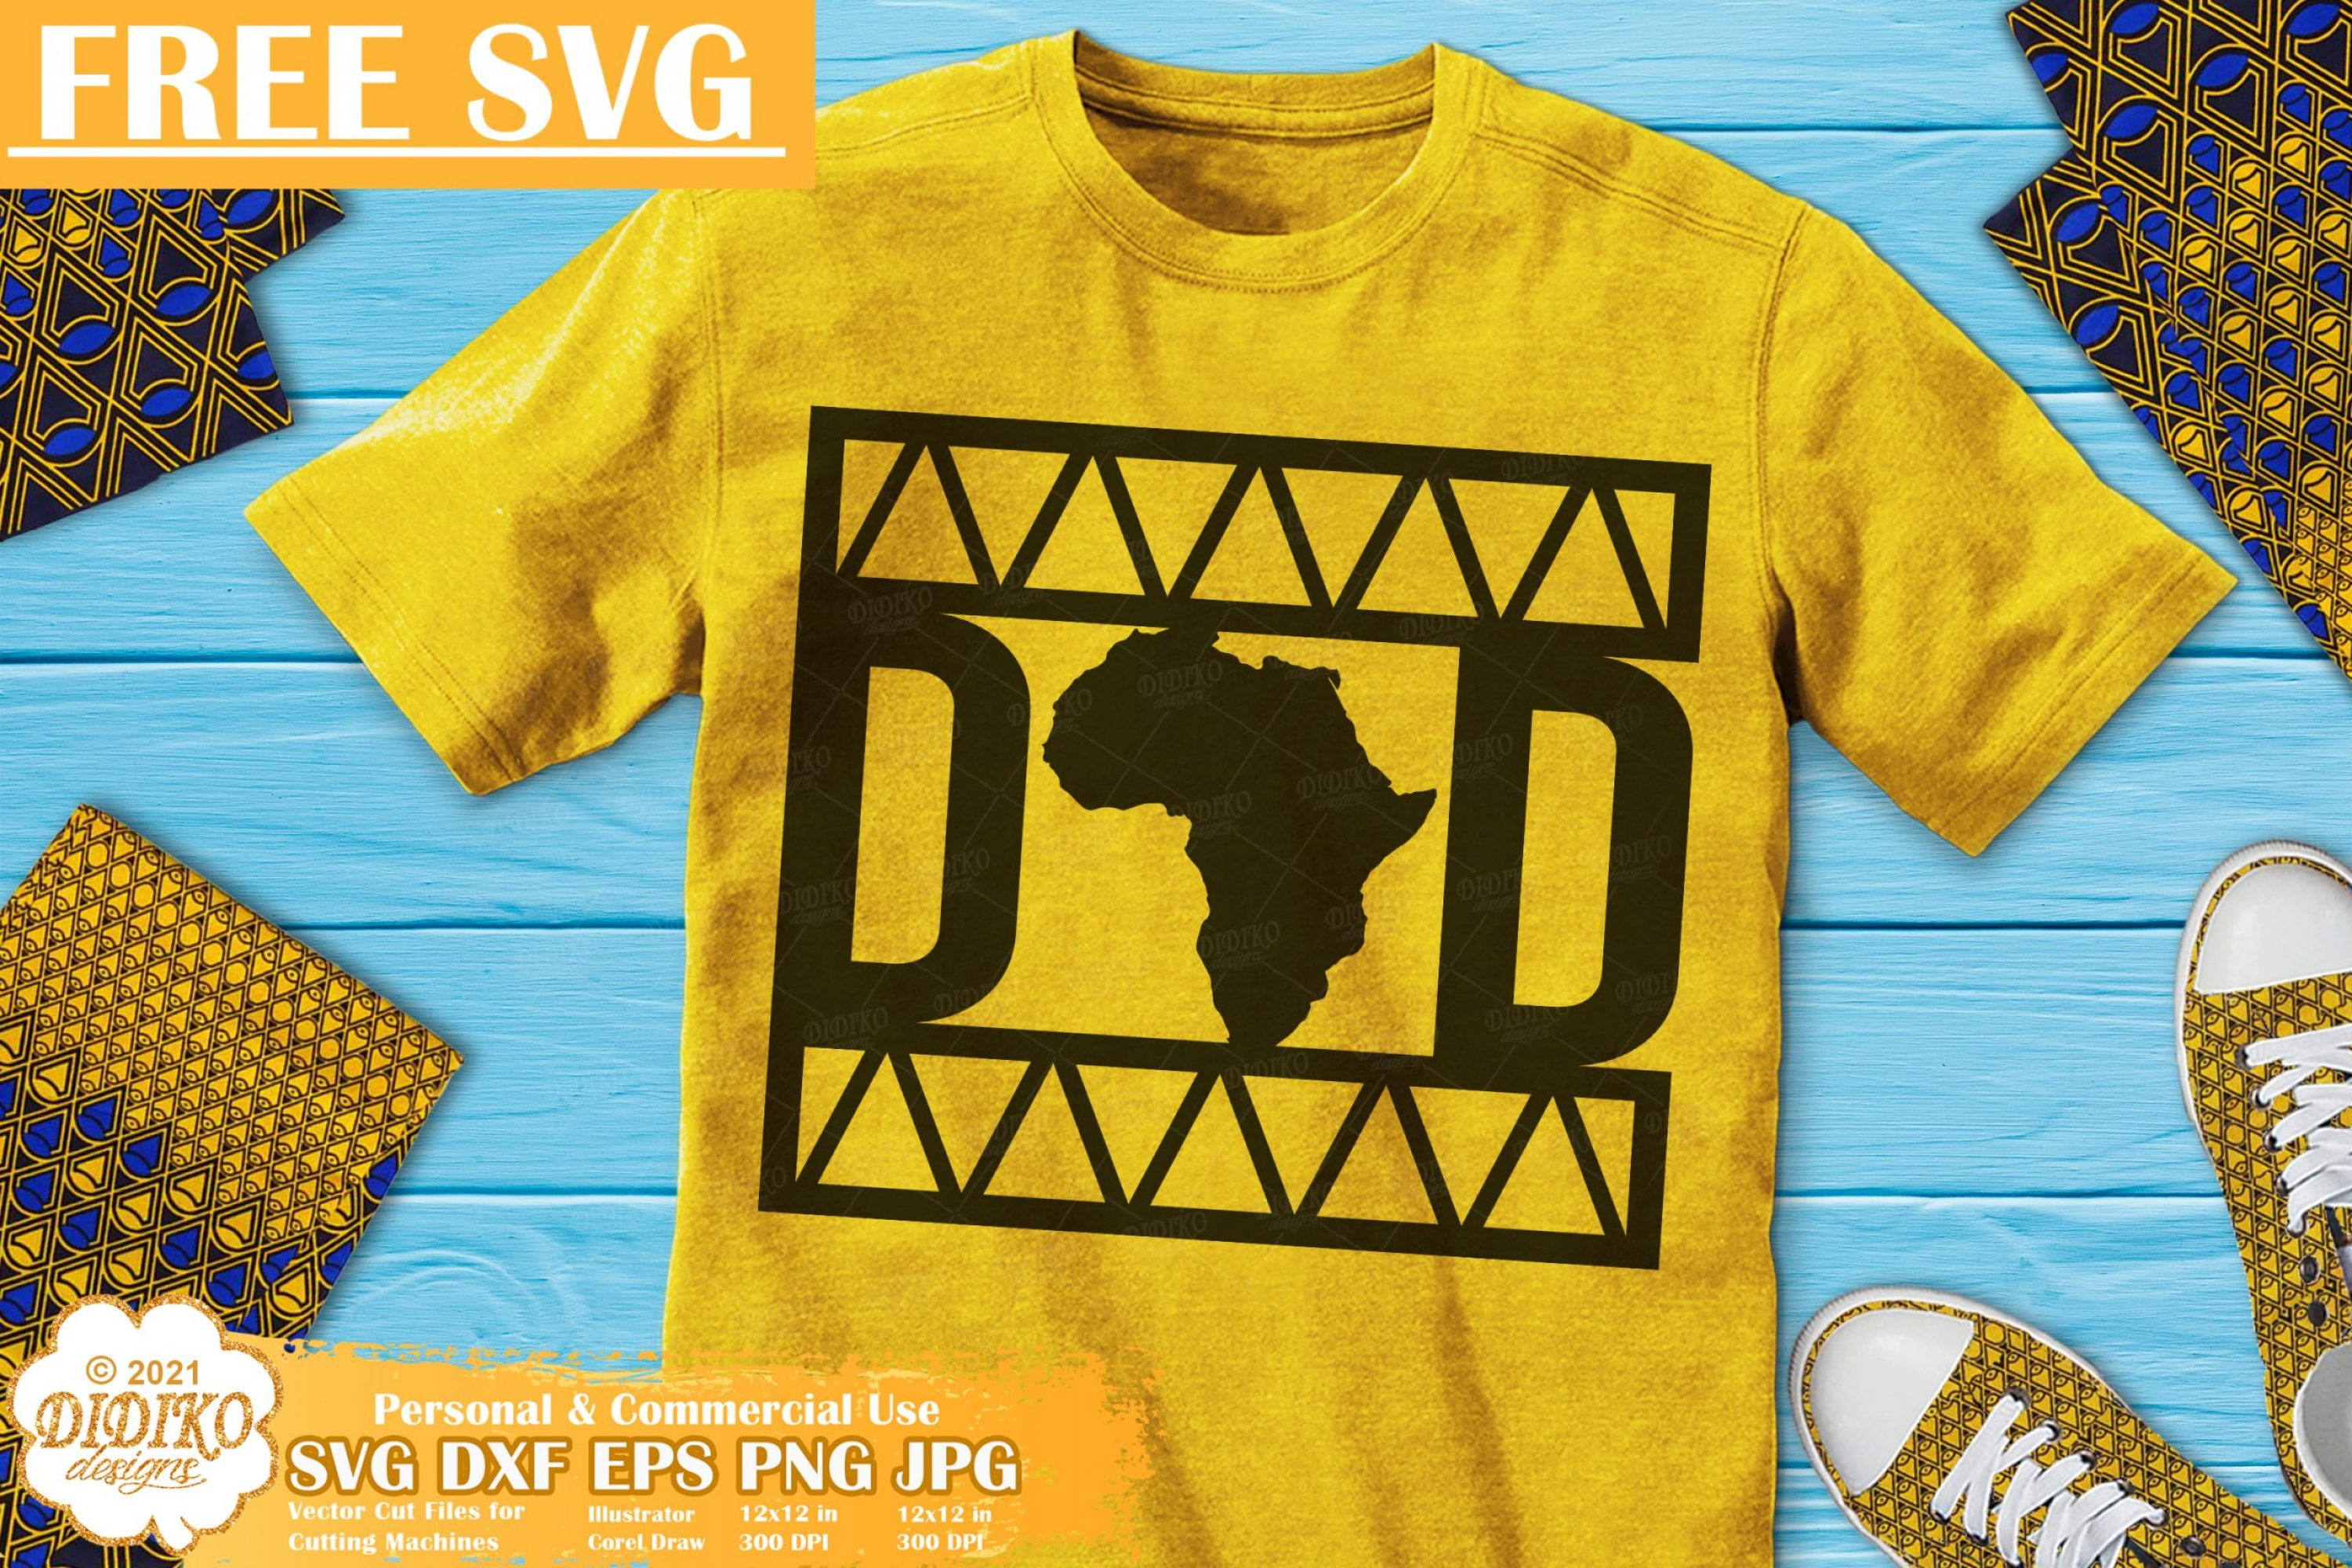 Black Dad Free SVG, Black History Svg, Ankara Svg